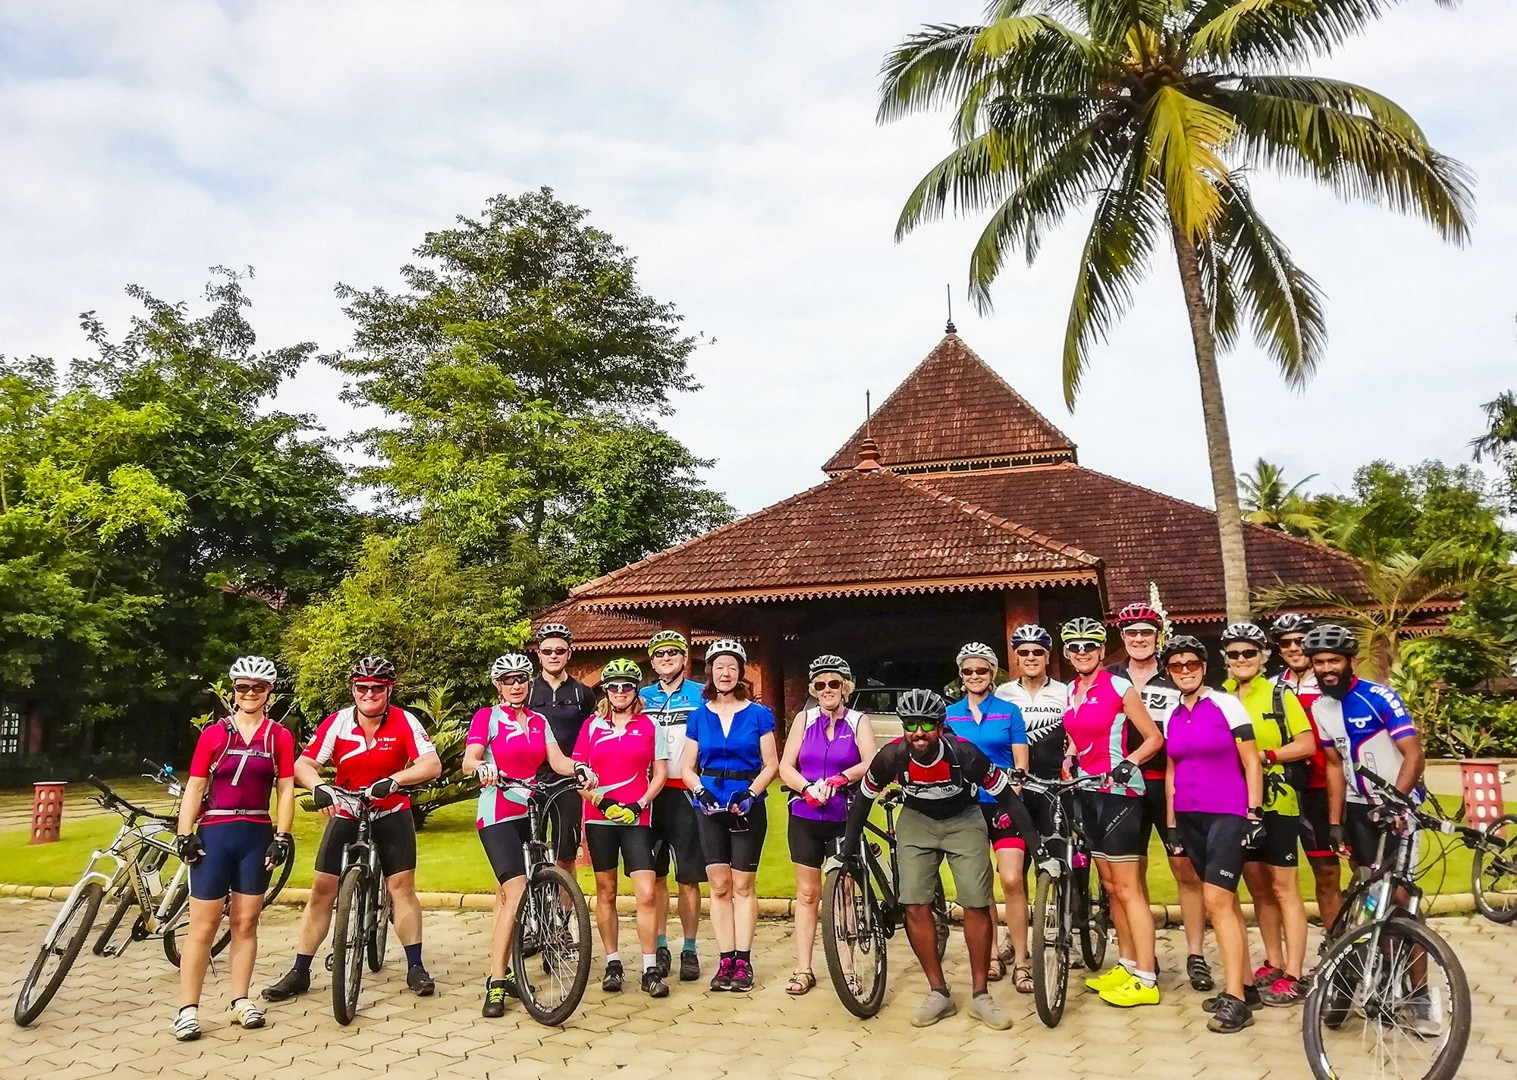 IMG_20181120_082913-2.jpg - India - Classic Kerala - Cycling Adventures